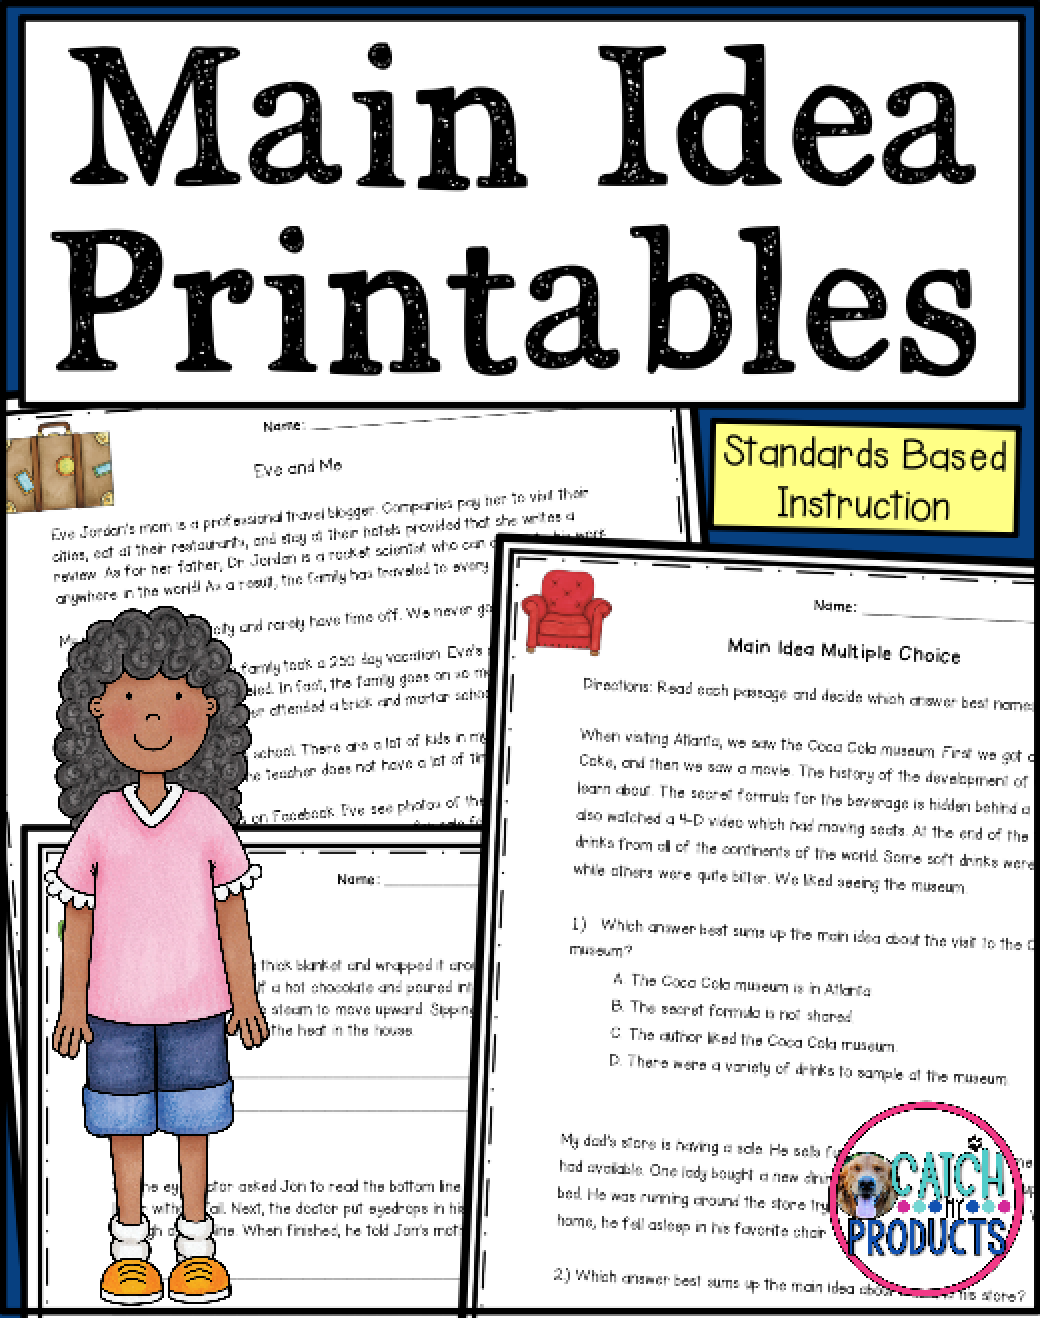 Main Idea Passages For Fourth Grade Worksheets